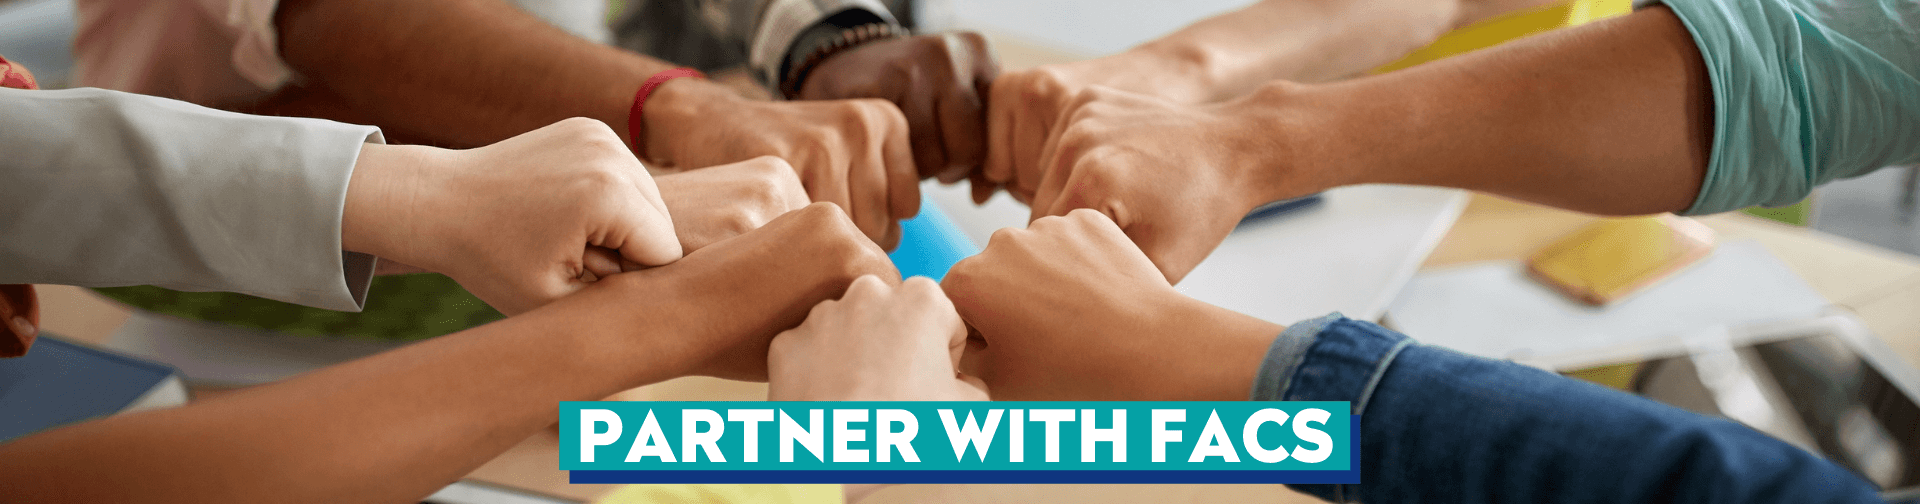 group of people putting fists together as a team